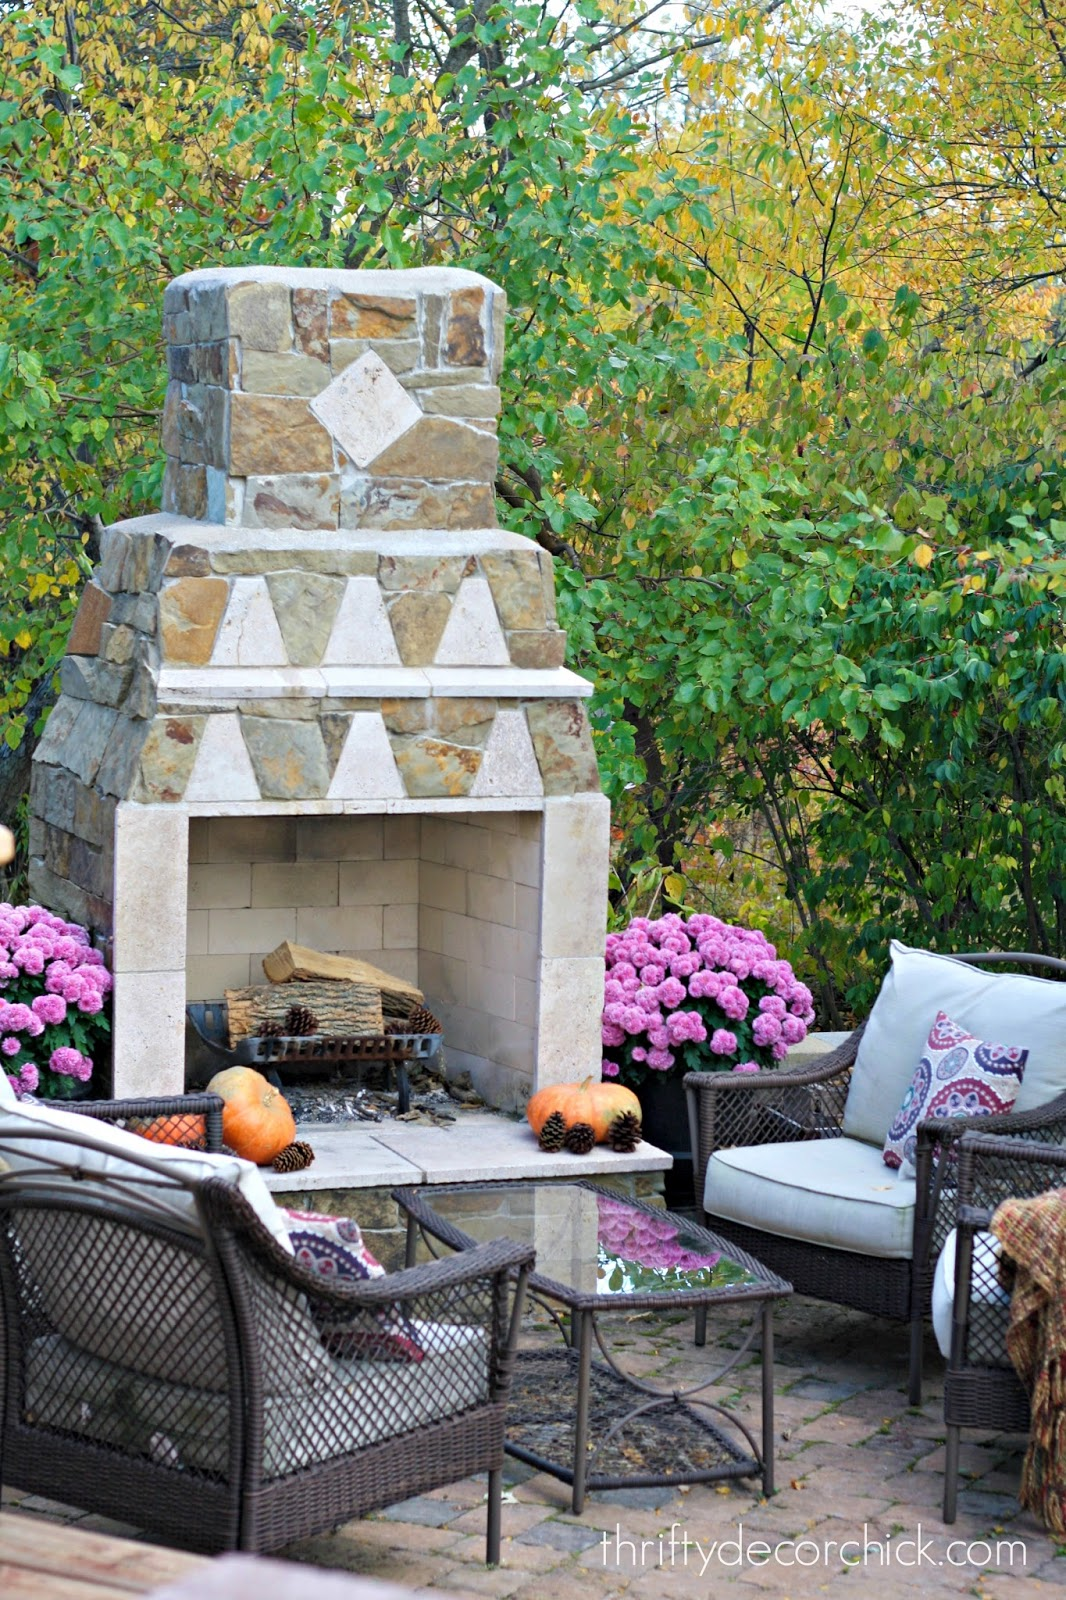 Best Of Fall Decorating Ideas From Thrifty Decor Chick